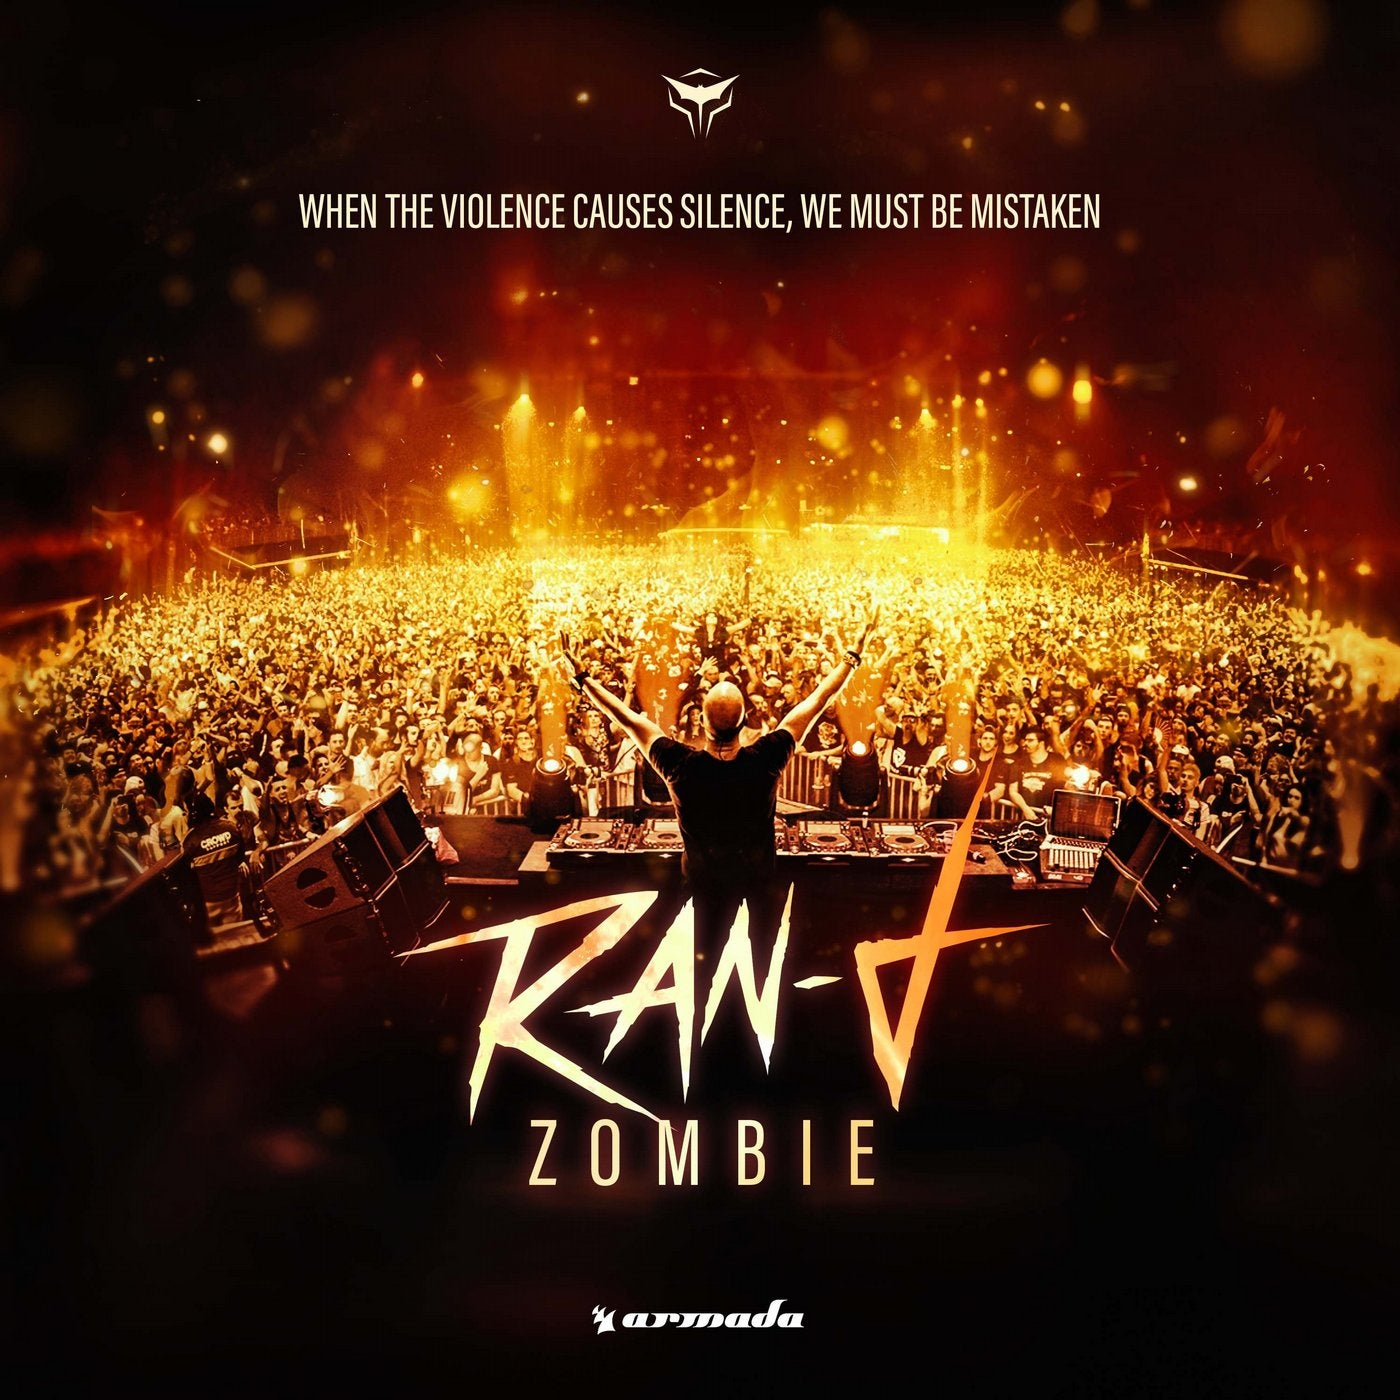 Zombie (Extended Mix)